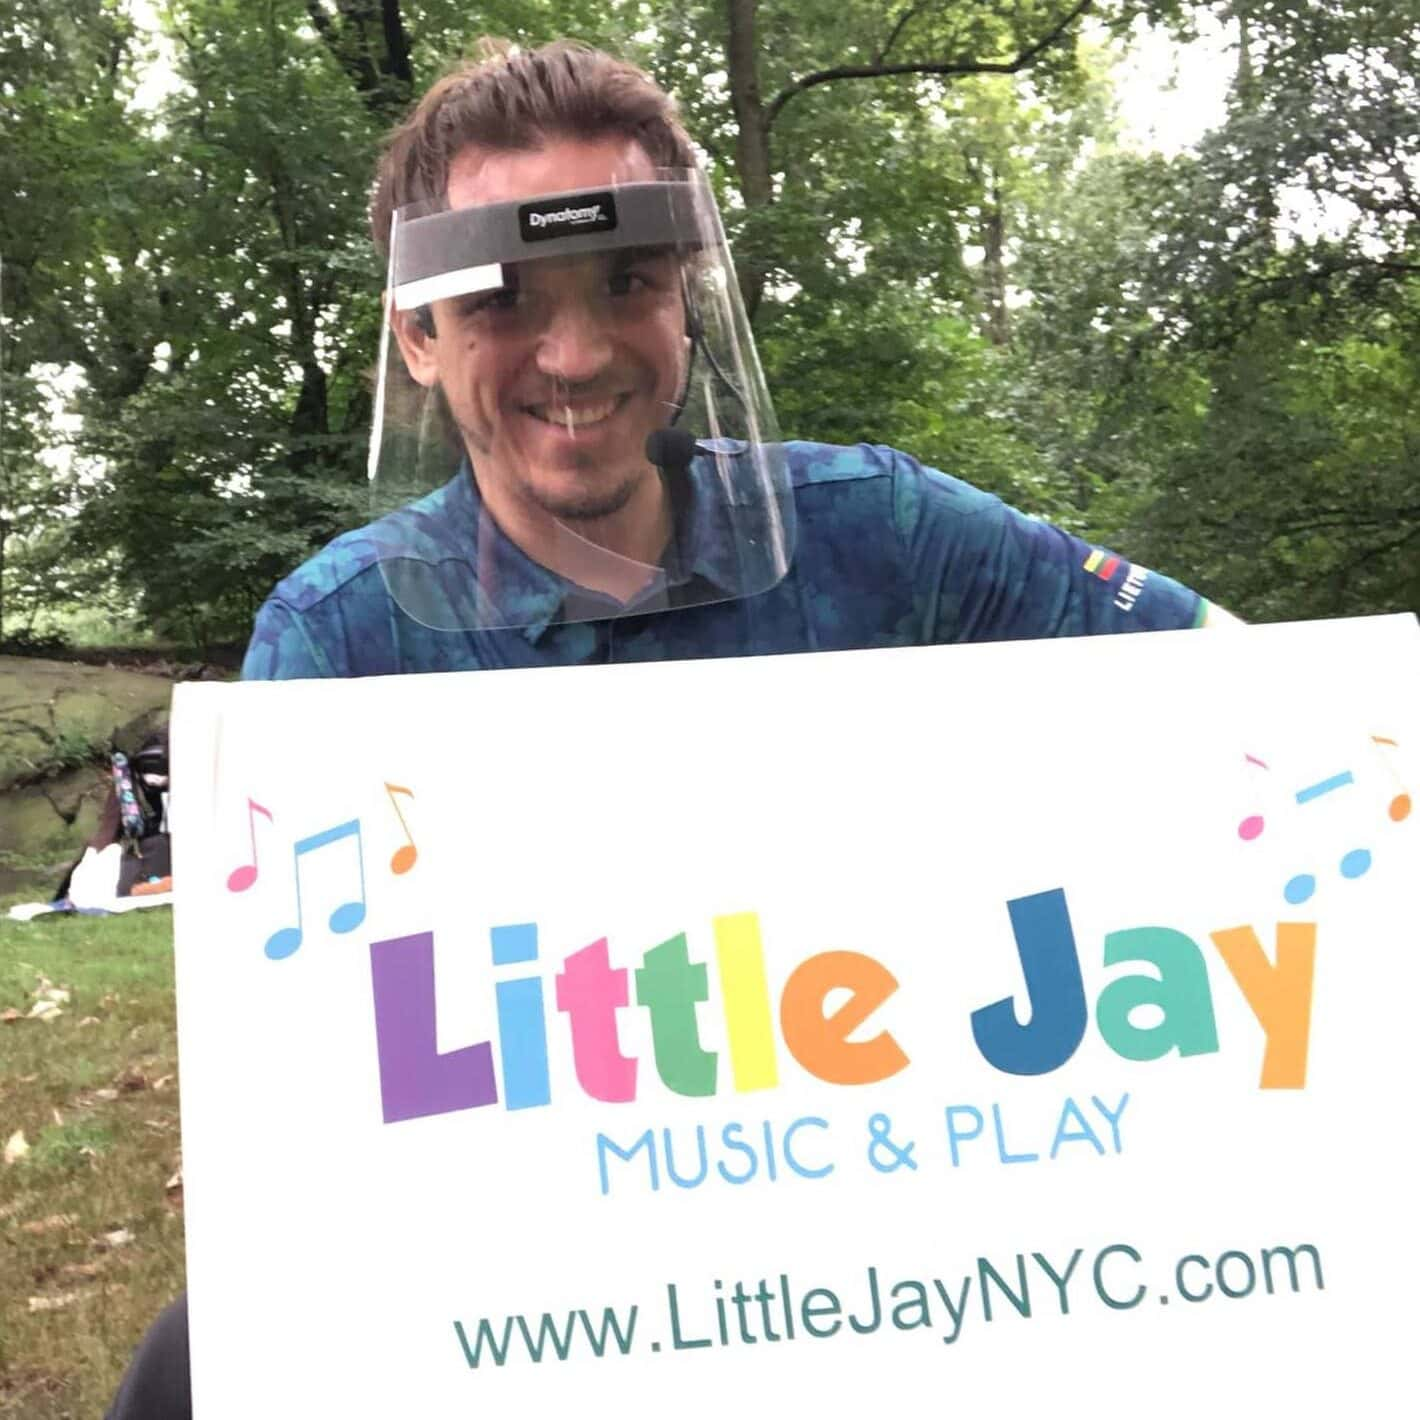 little Jay music and play